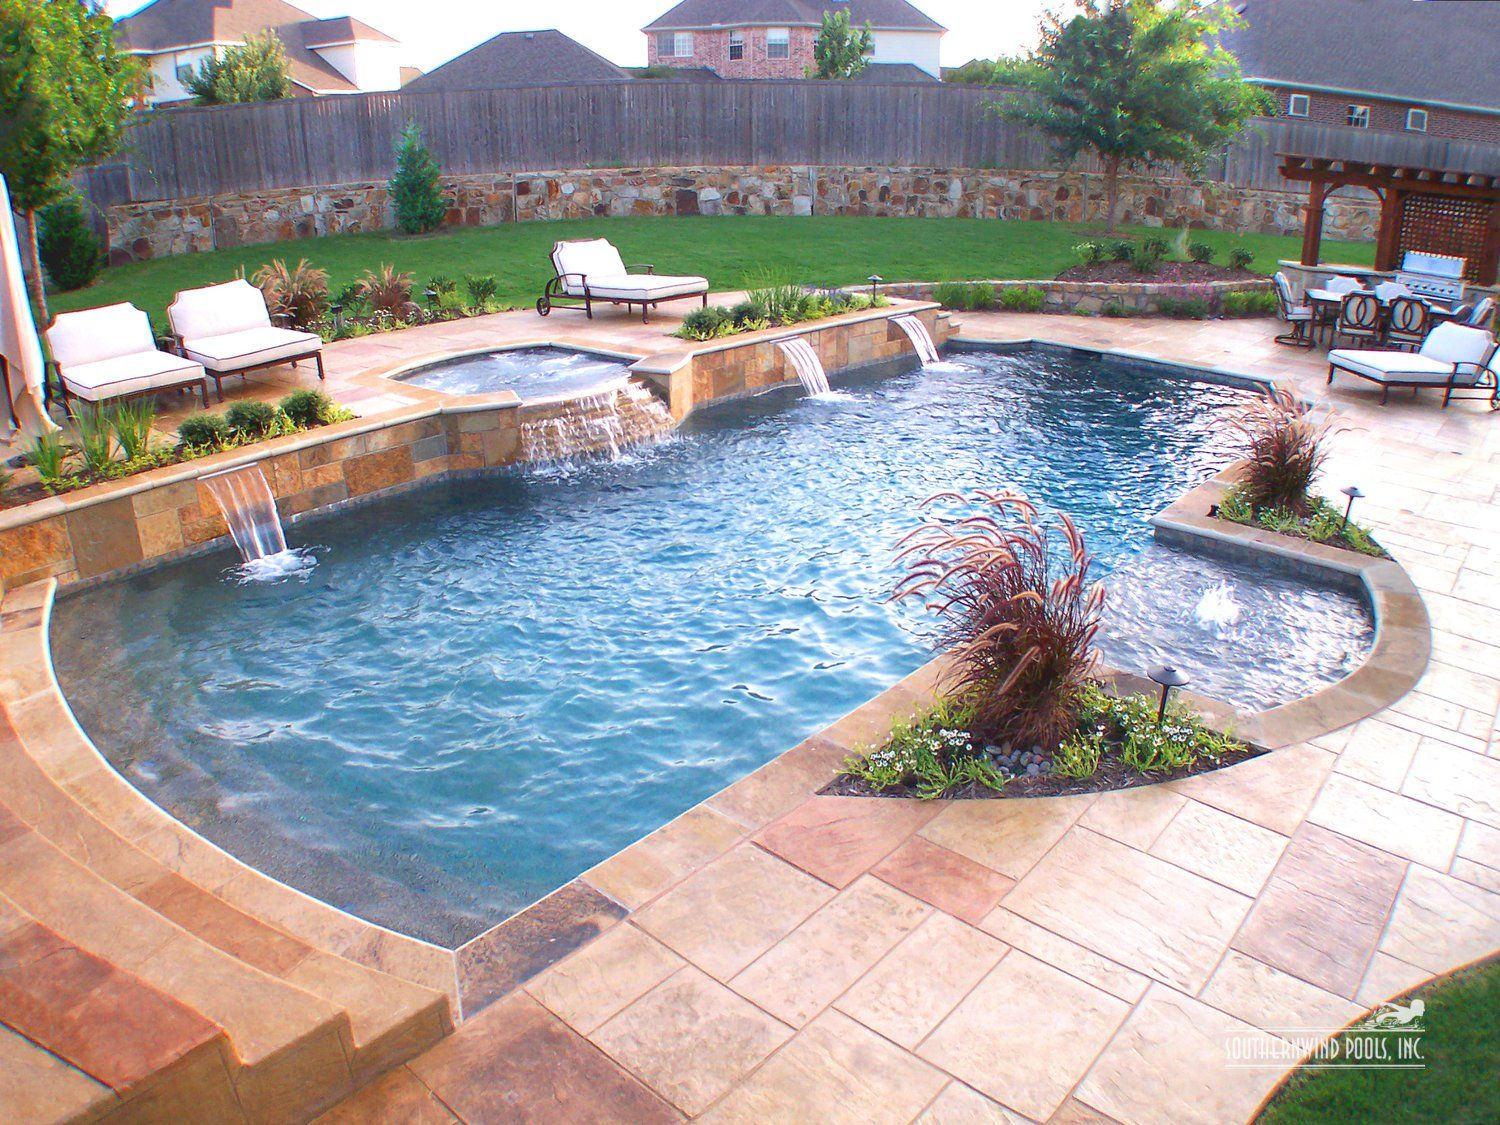 Southernwind Pools | Our Pools: Classic / Formal Pools ... on Nice Backyard Landscaping Ideas id=58587